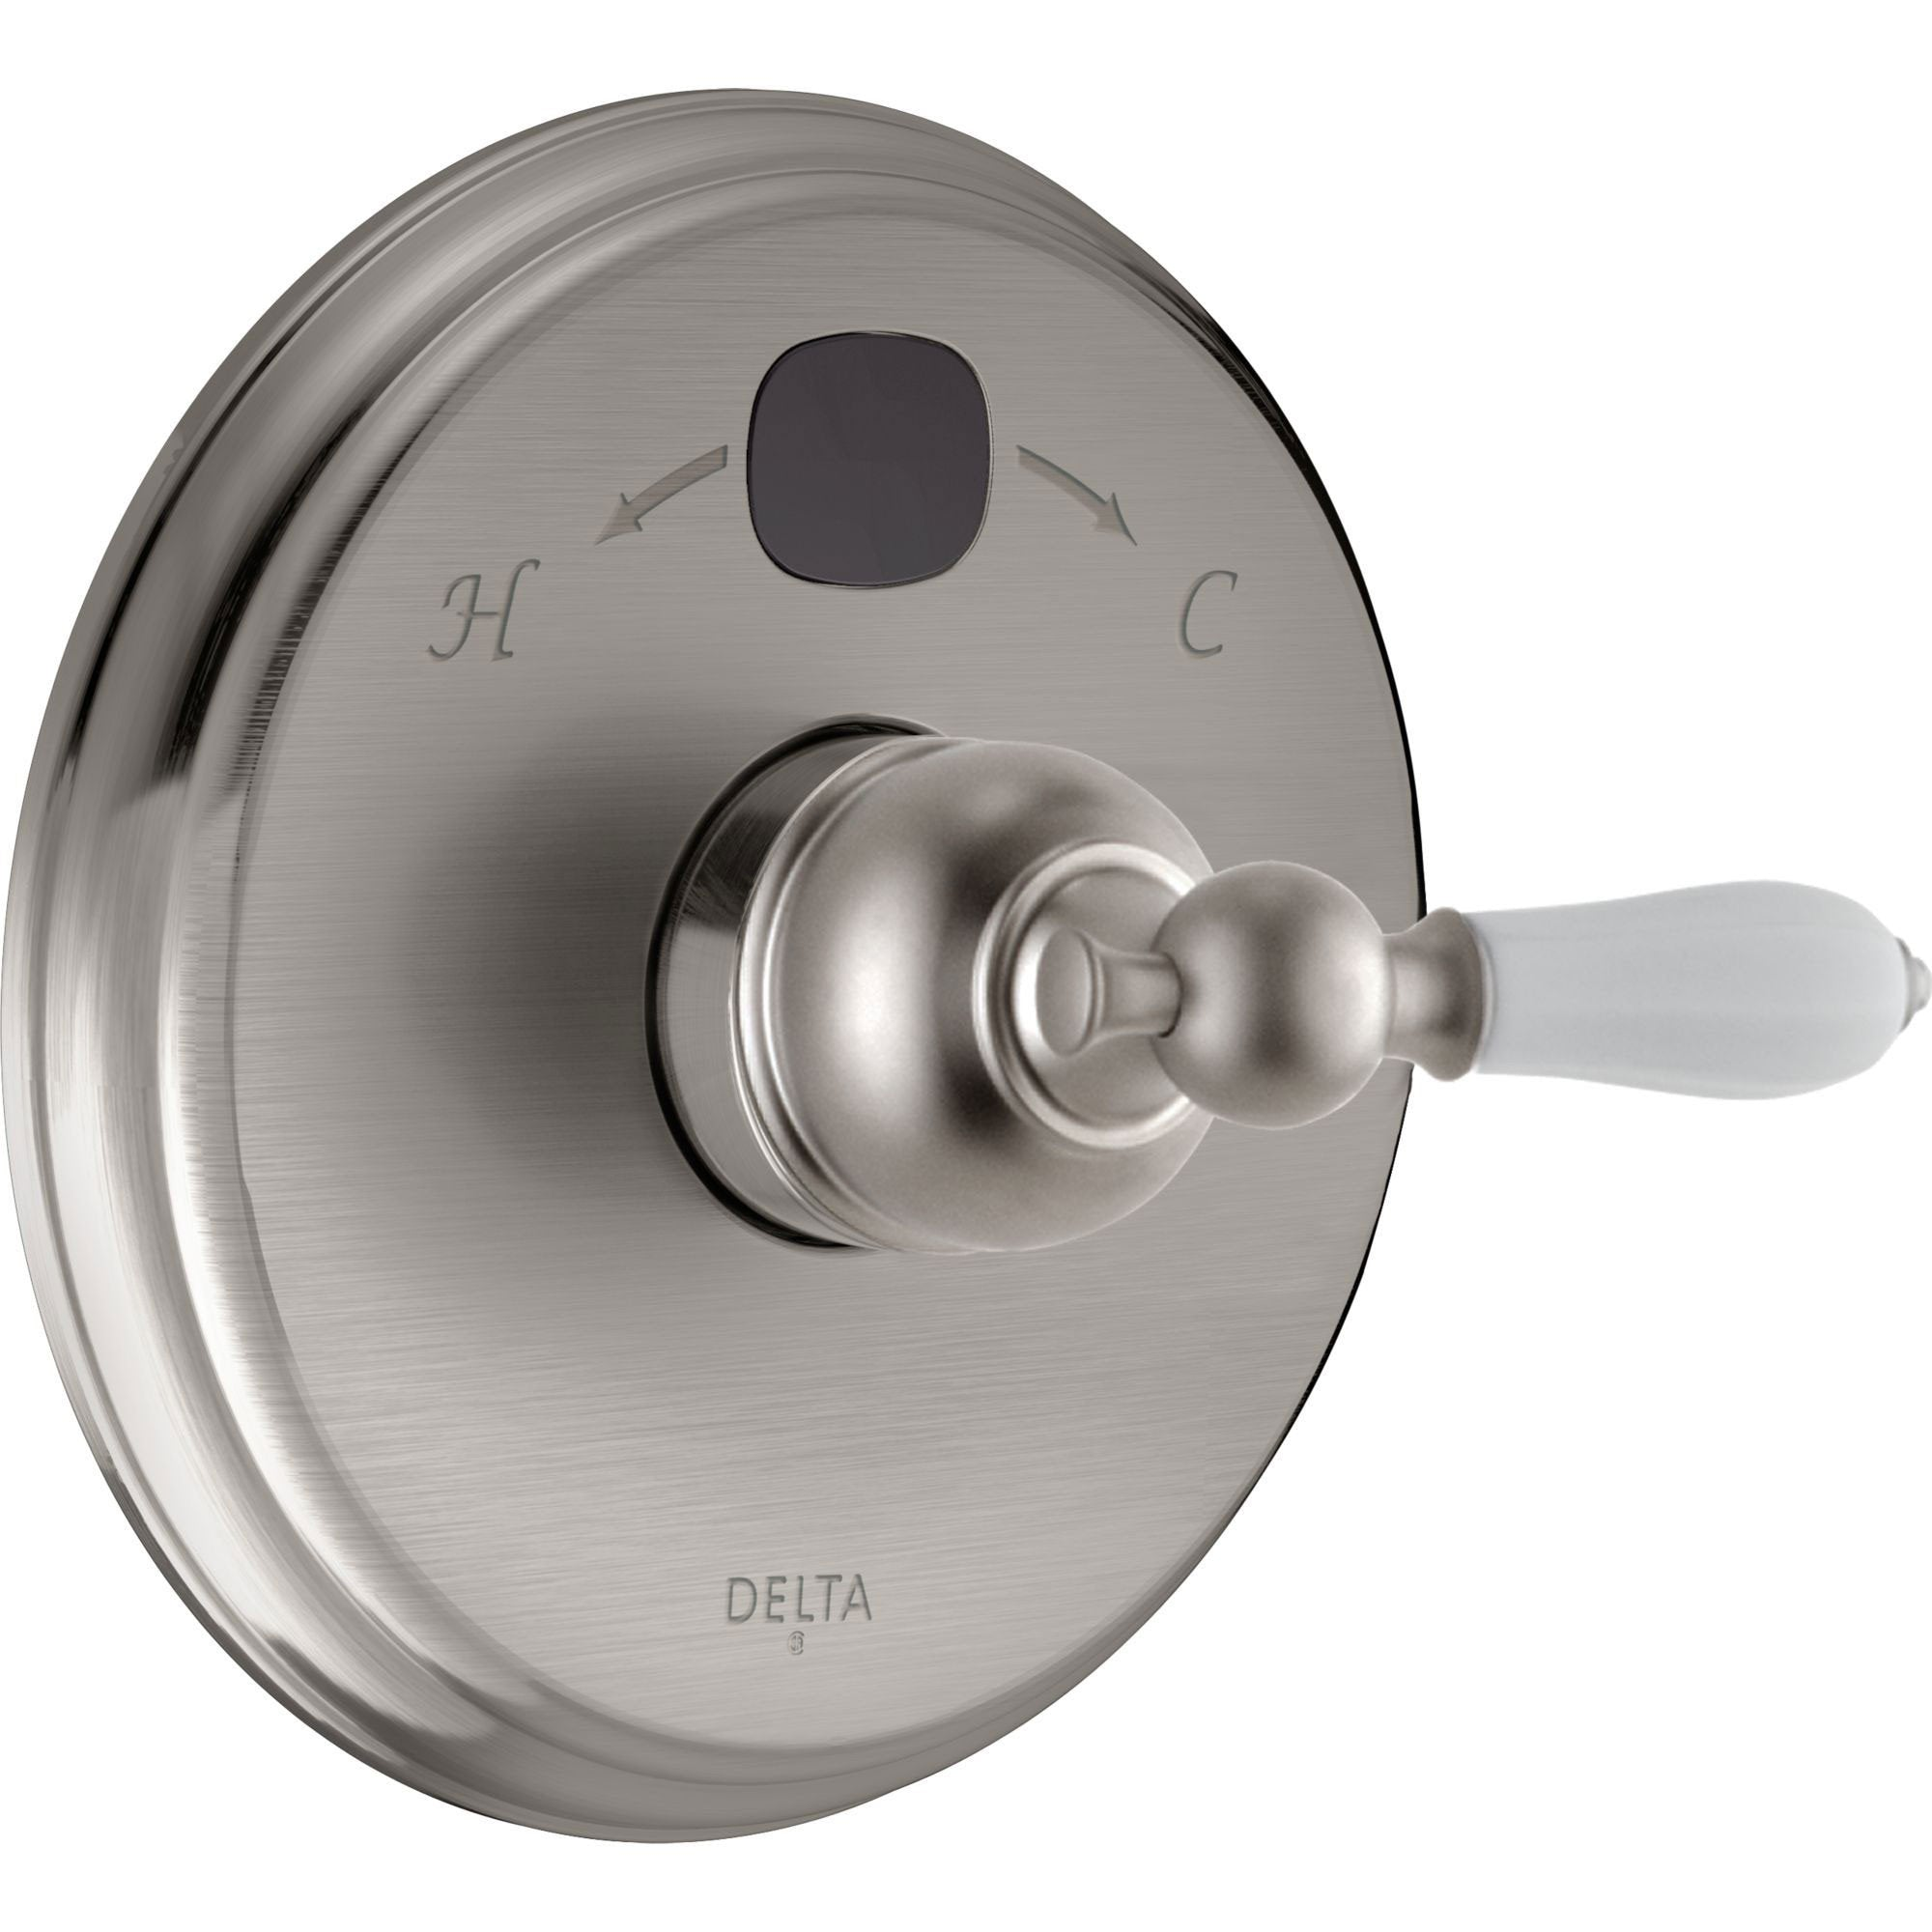 Delta Traditional 14 Series Temp2O Stainless Steel Finish Pressure Balanced Shower Faucet Control with Digital Display INCLUDES Rough-in Valve with Stops and White Porcelain Lever Handle D1273V